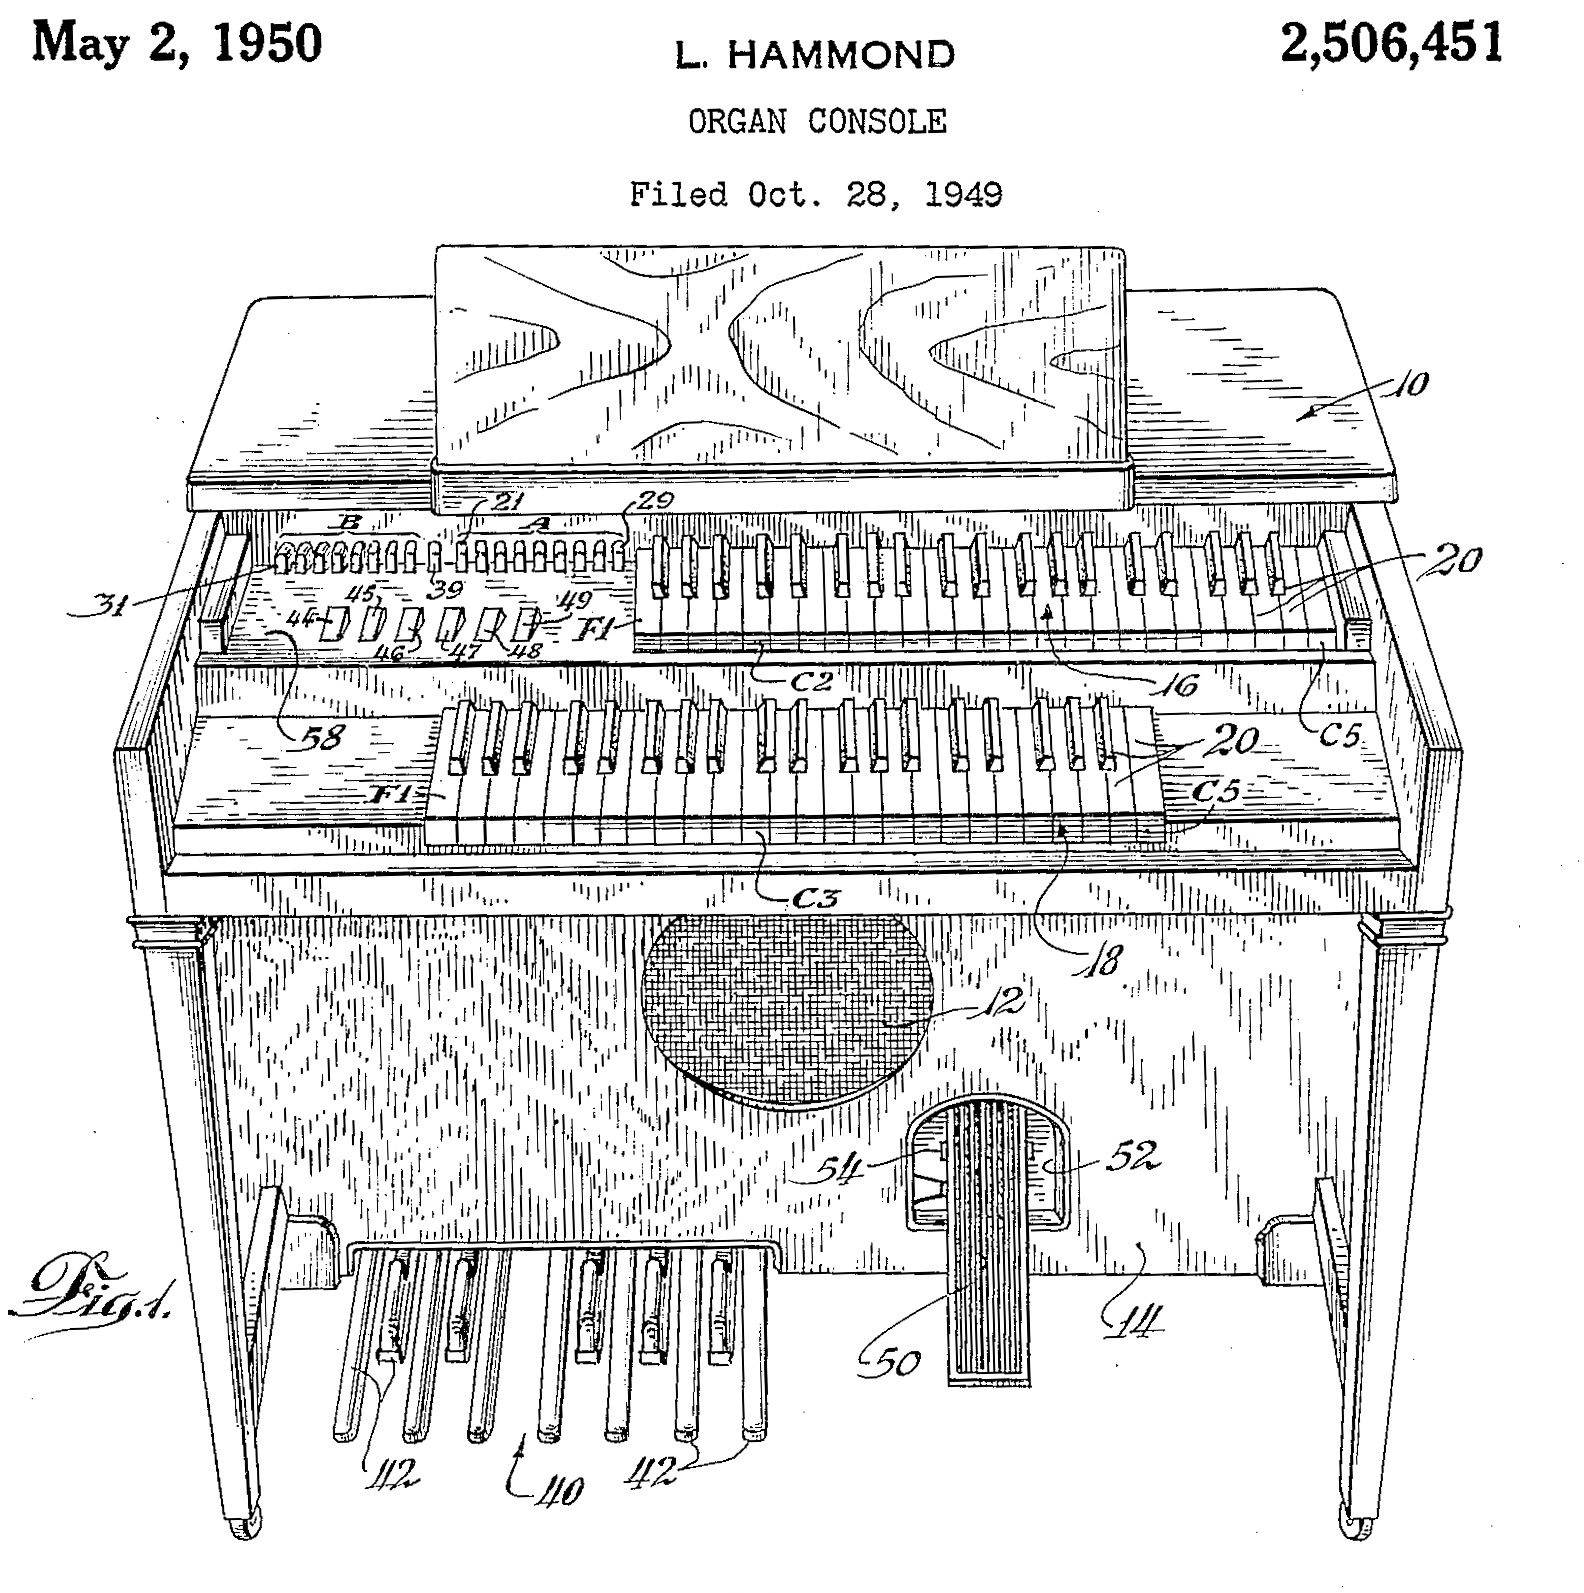 File:US2506451A Organ Console (1949-10-28 filed, 1950-05